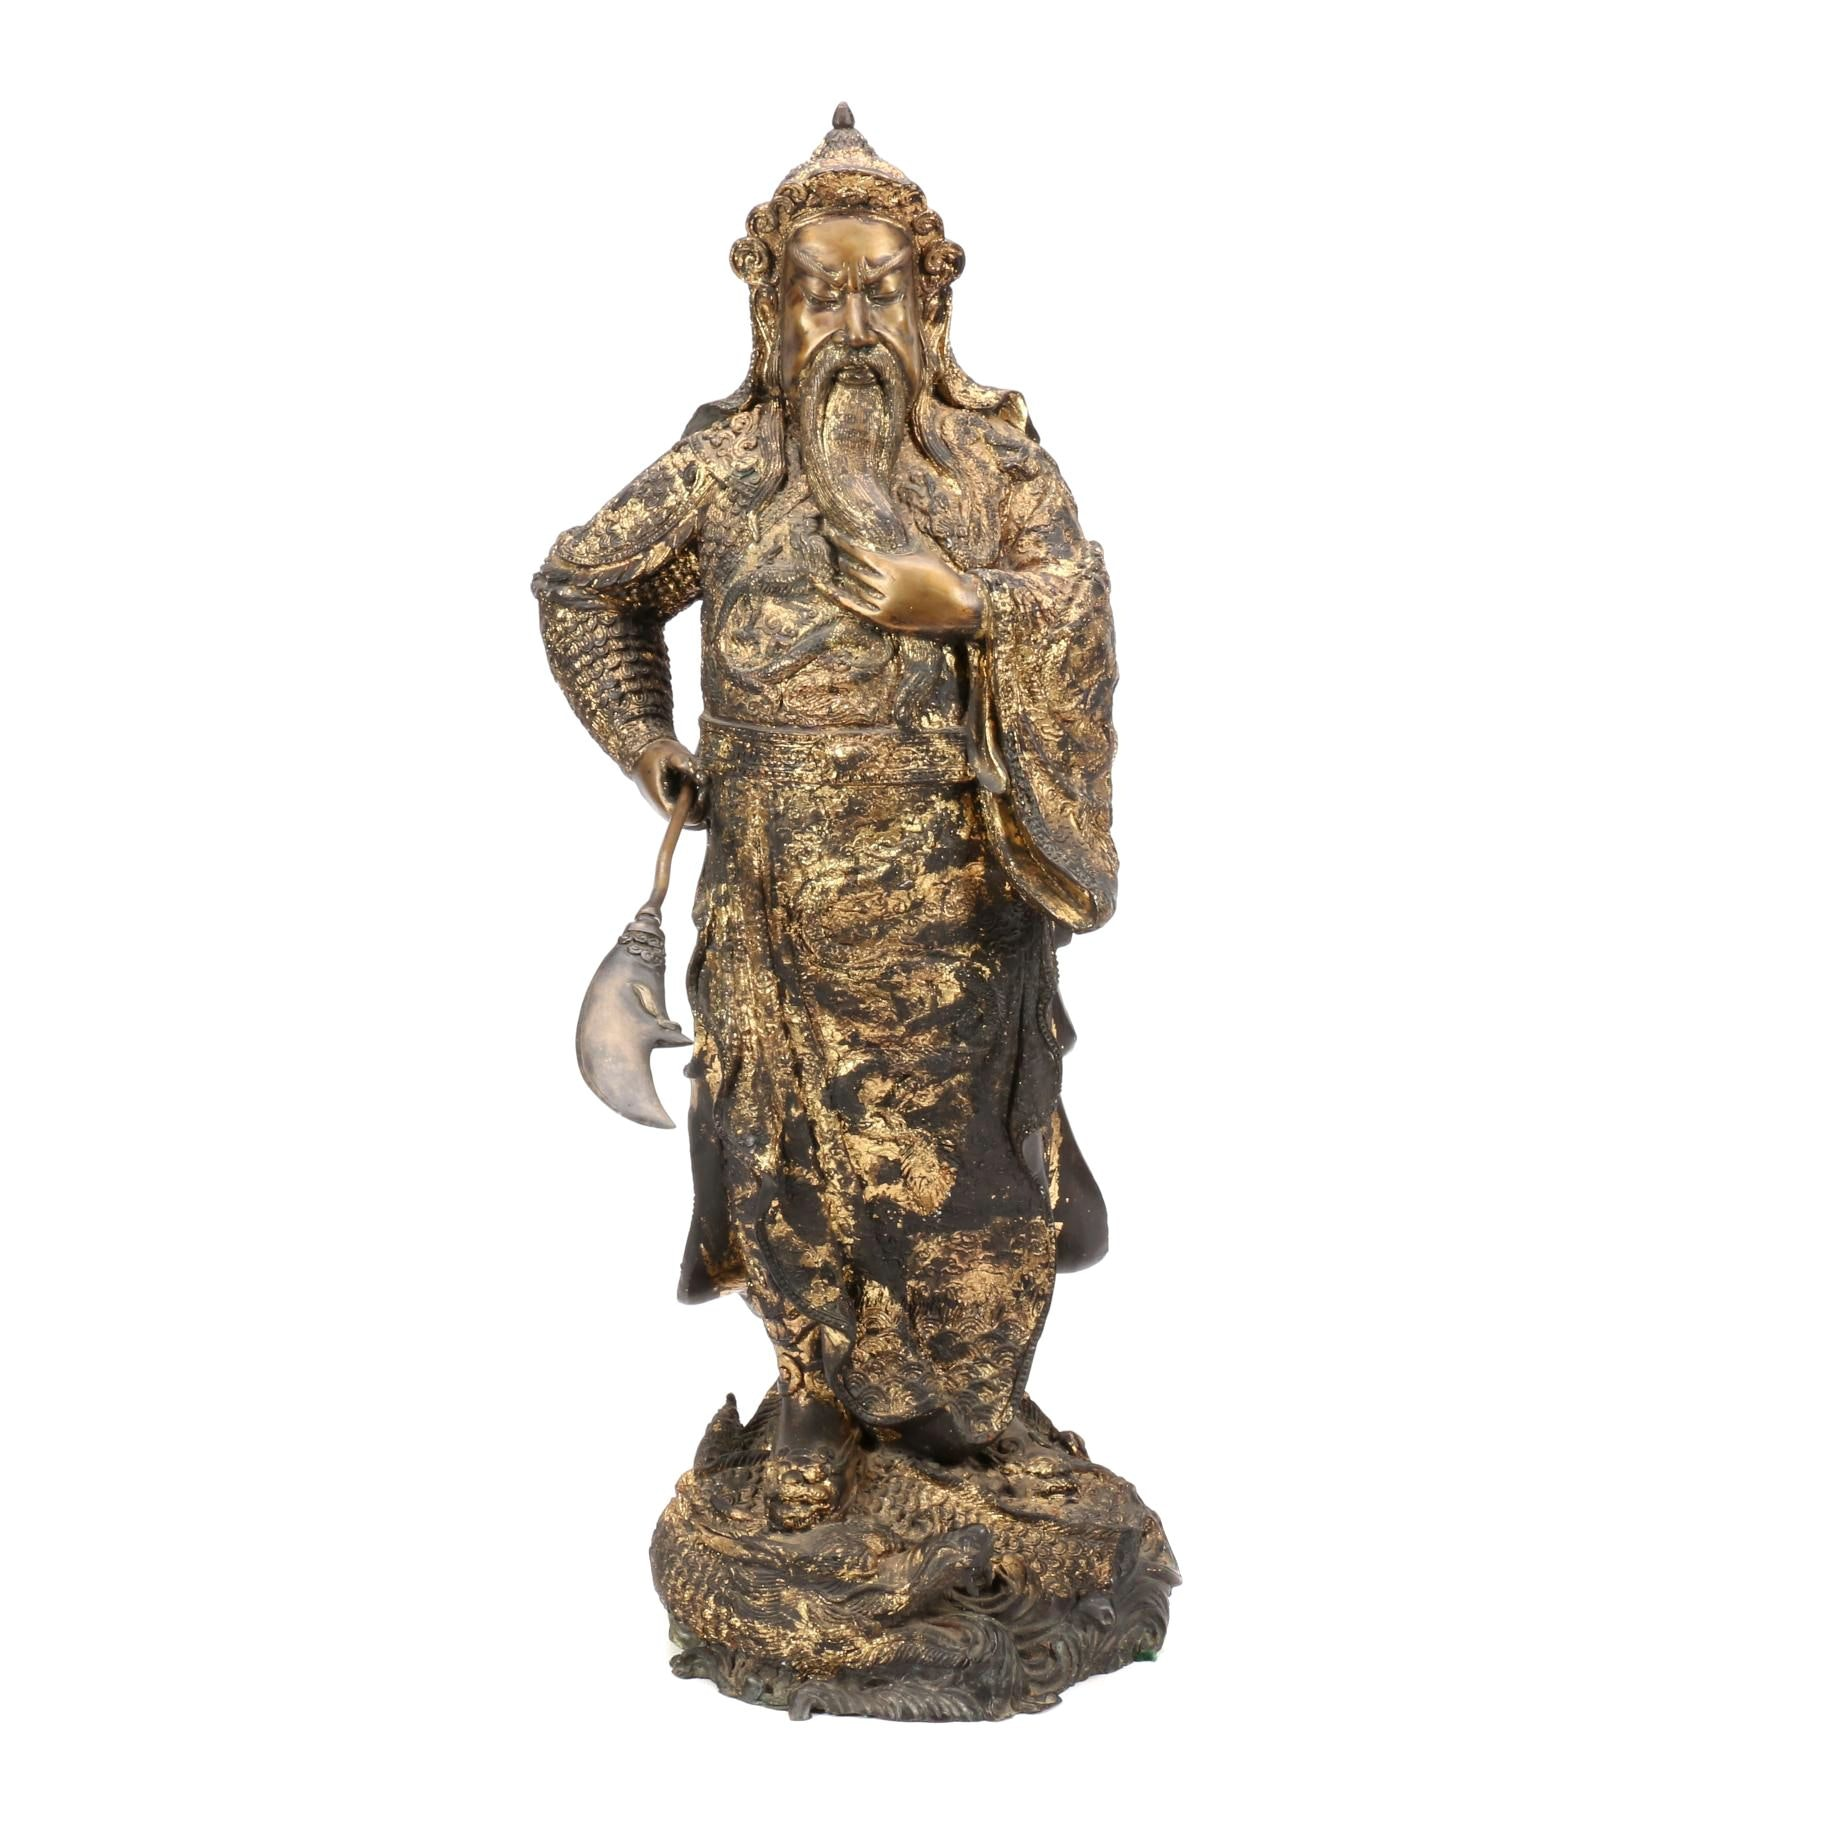 Qing Dynasty Chinese Gilt Bronze Sculpture of Guan Yu